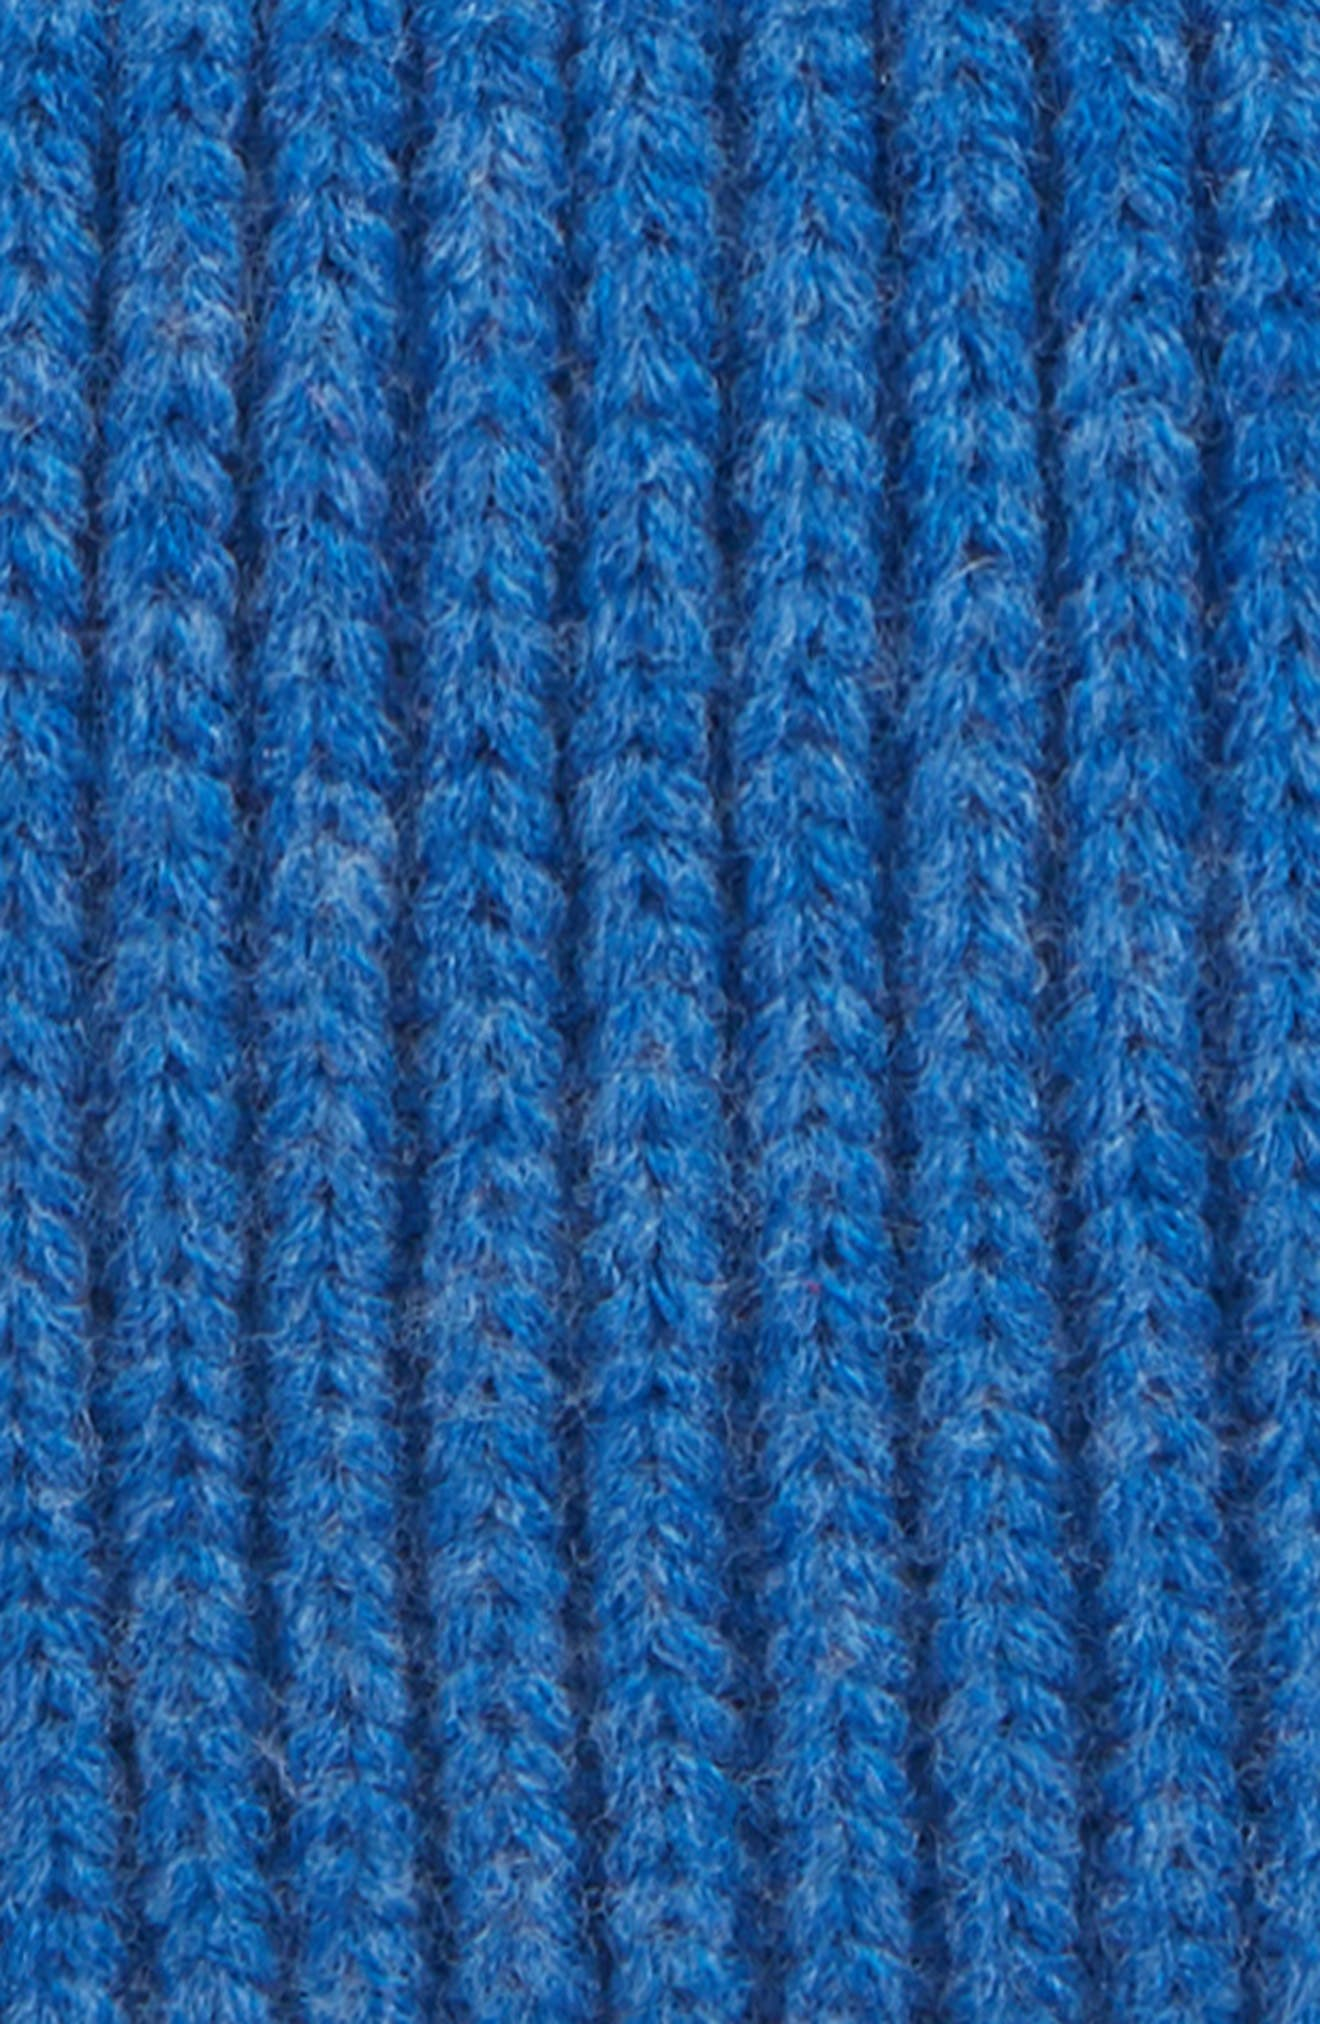 Cuff Beanie,                             Alternate thumbnail 2, color,                             BLUE CAMP